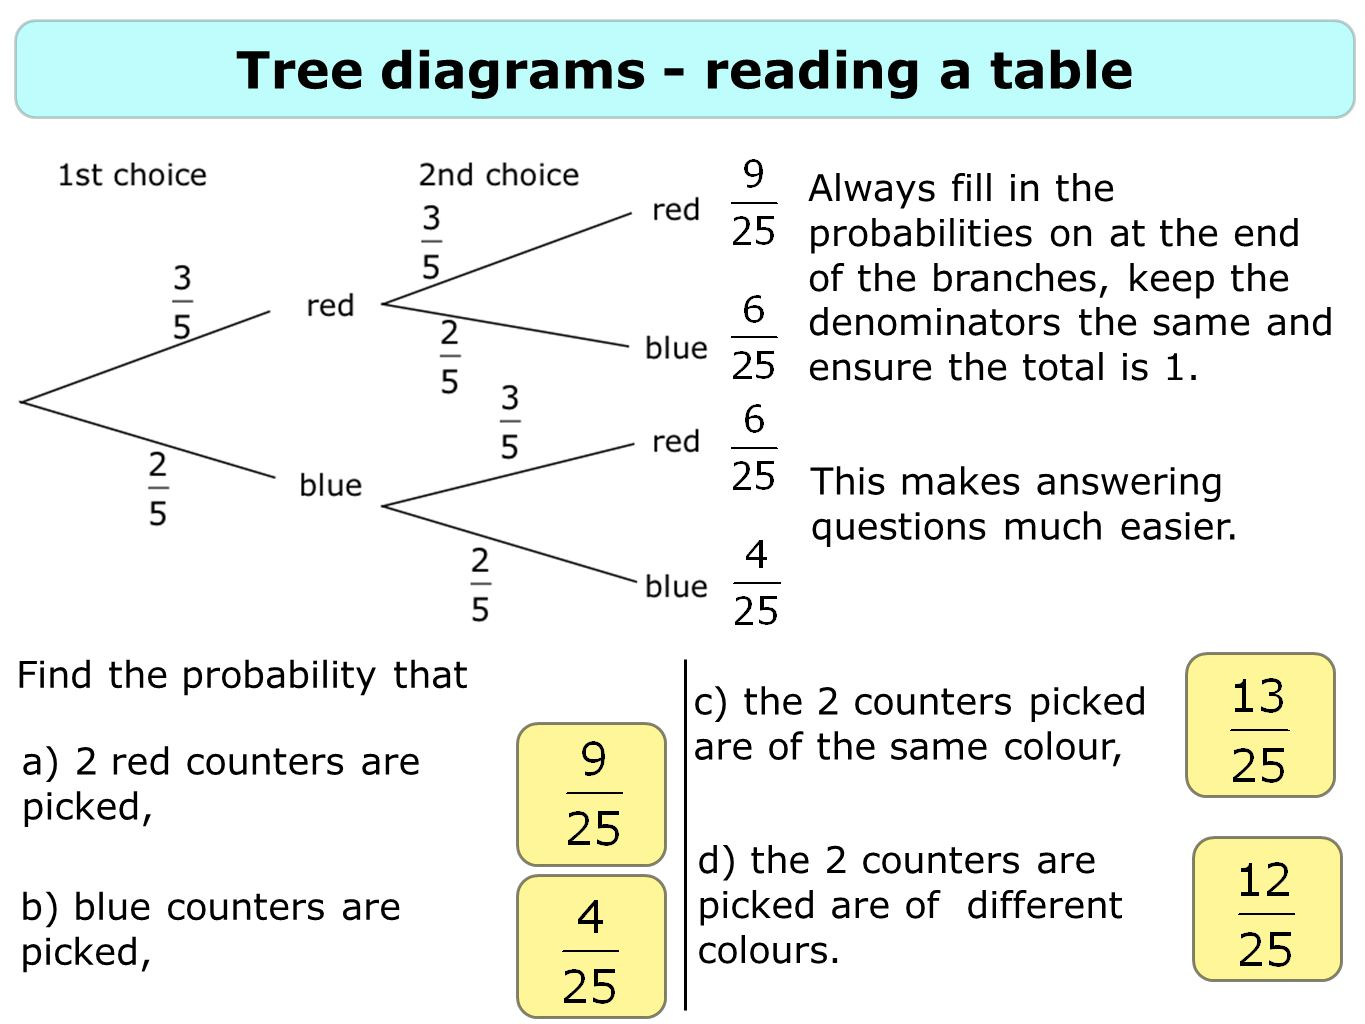 Tree diagrams - reading a table